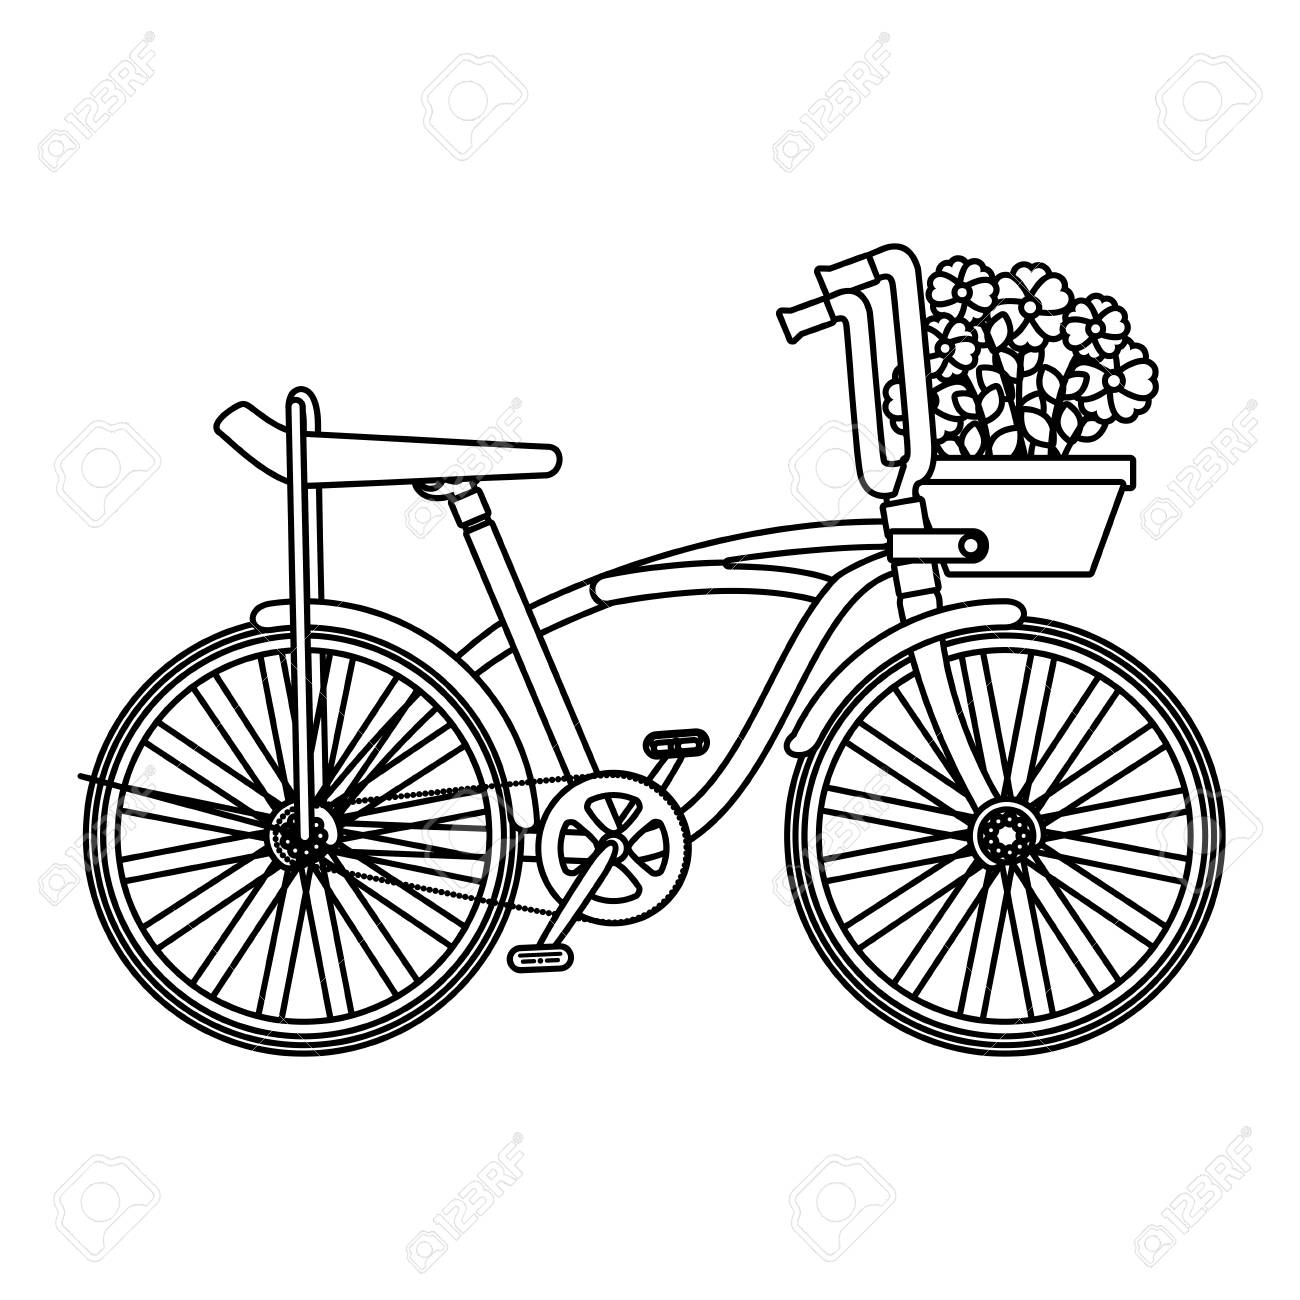 retro bicycle with basket and flowers vector illustration design - 126775162